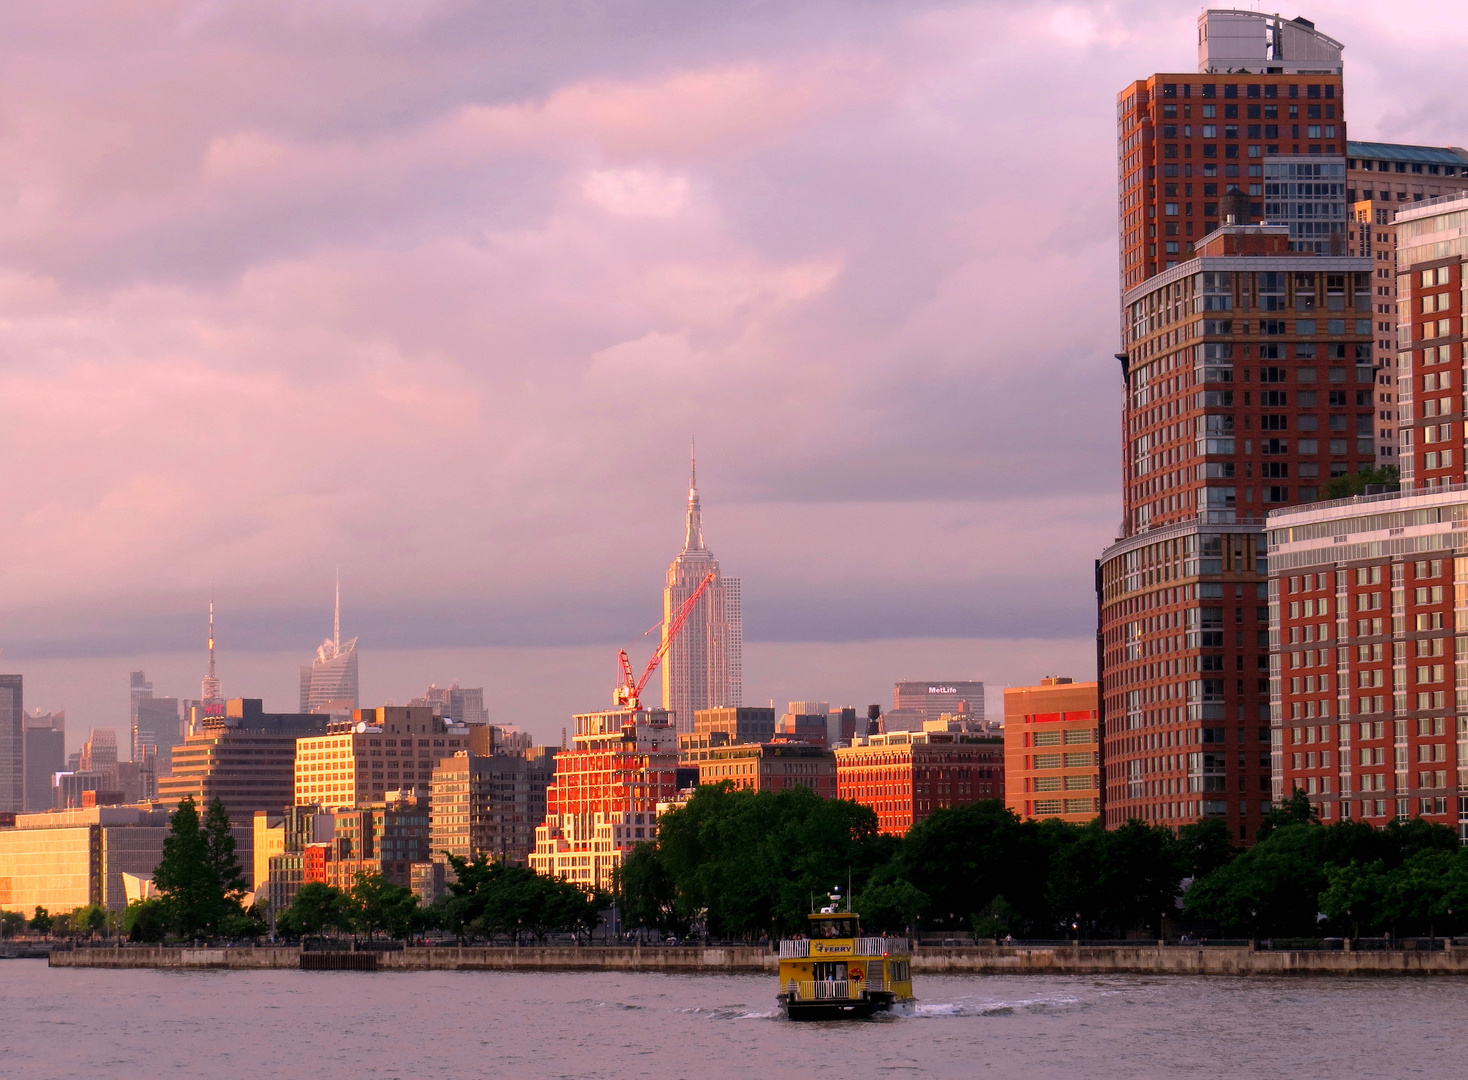 NEW YORK - evening atmosphere 2